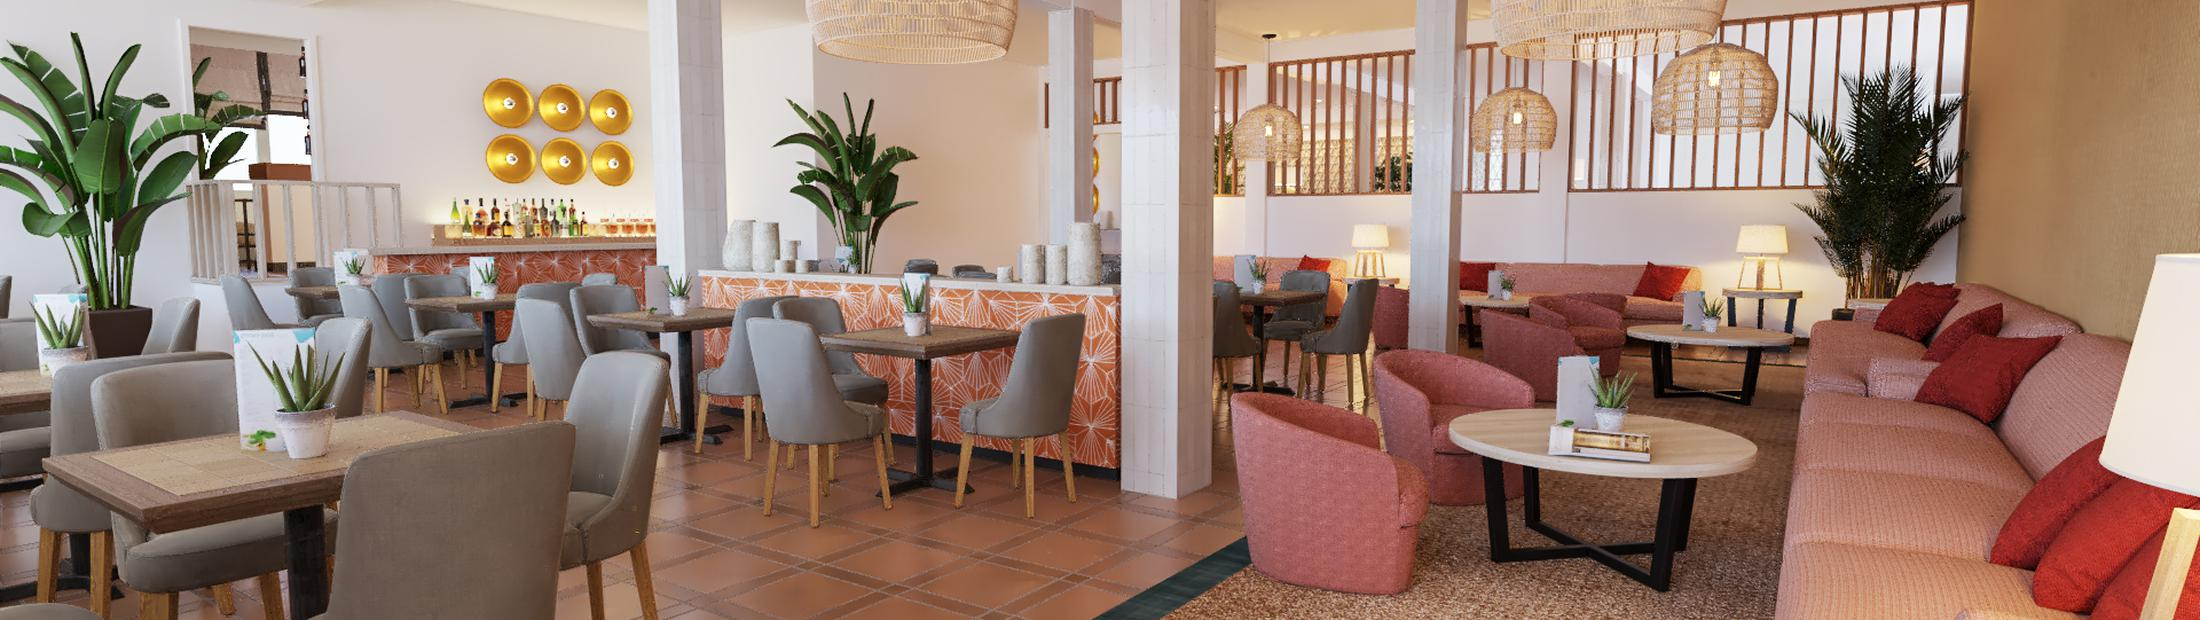 AluaSoul Menorca (Adults Only) - New incorporation AMResorts ****S'Algar, Menorca AluaSoul Menorca (Adults Only)  Menorca